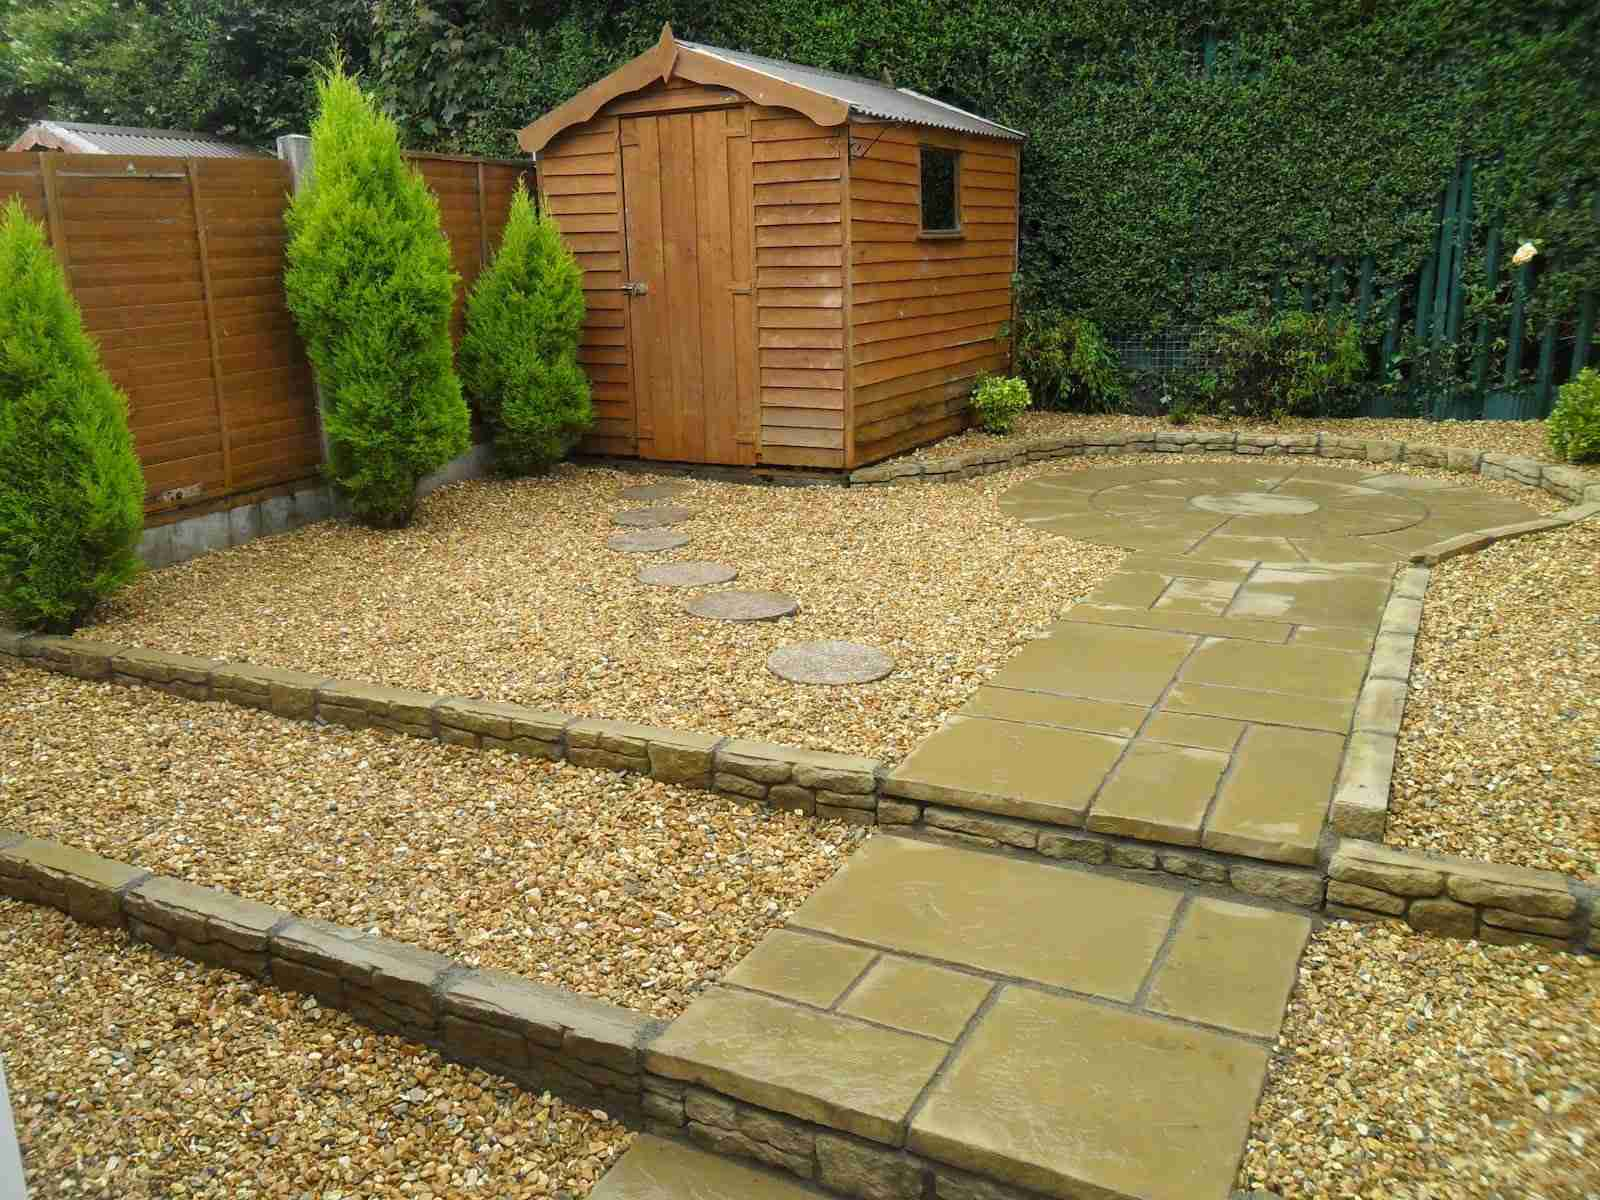 Low maintenace garden design in Bryanstown Manor, Drogheda co.Louth ⋆